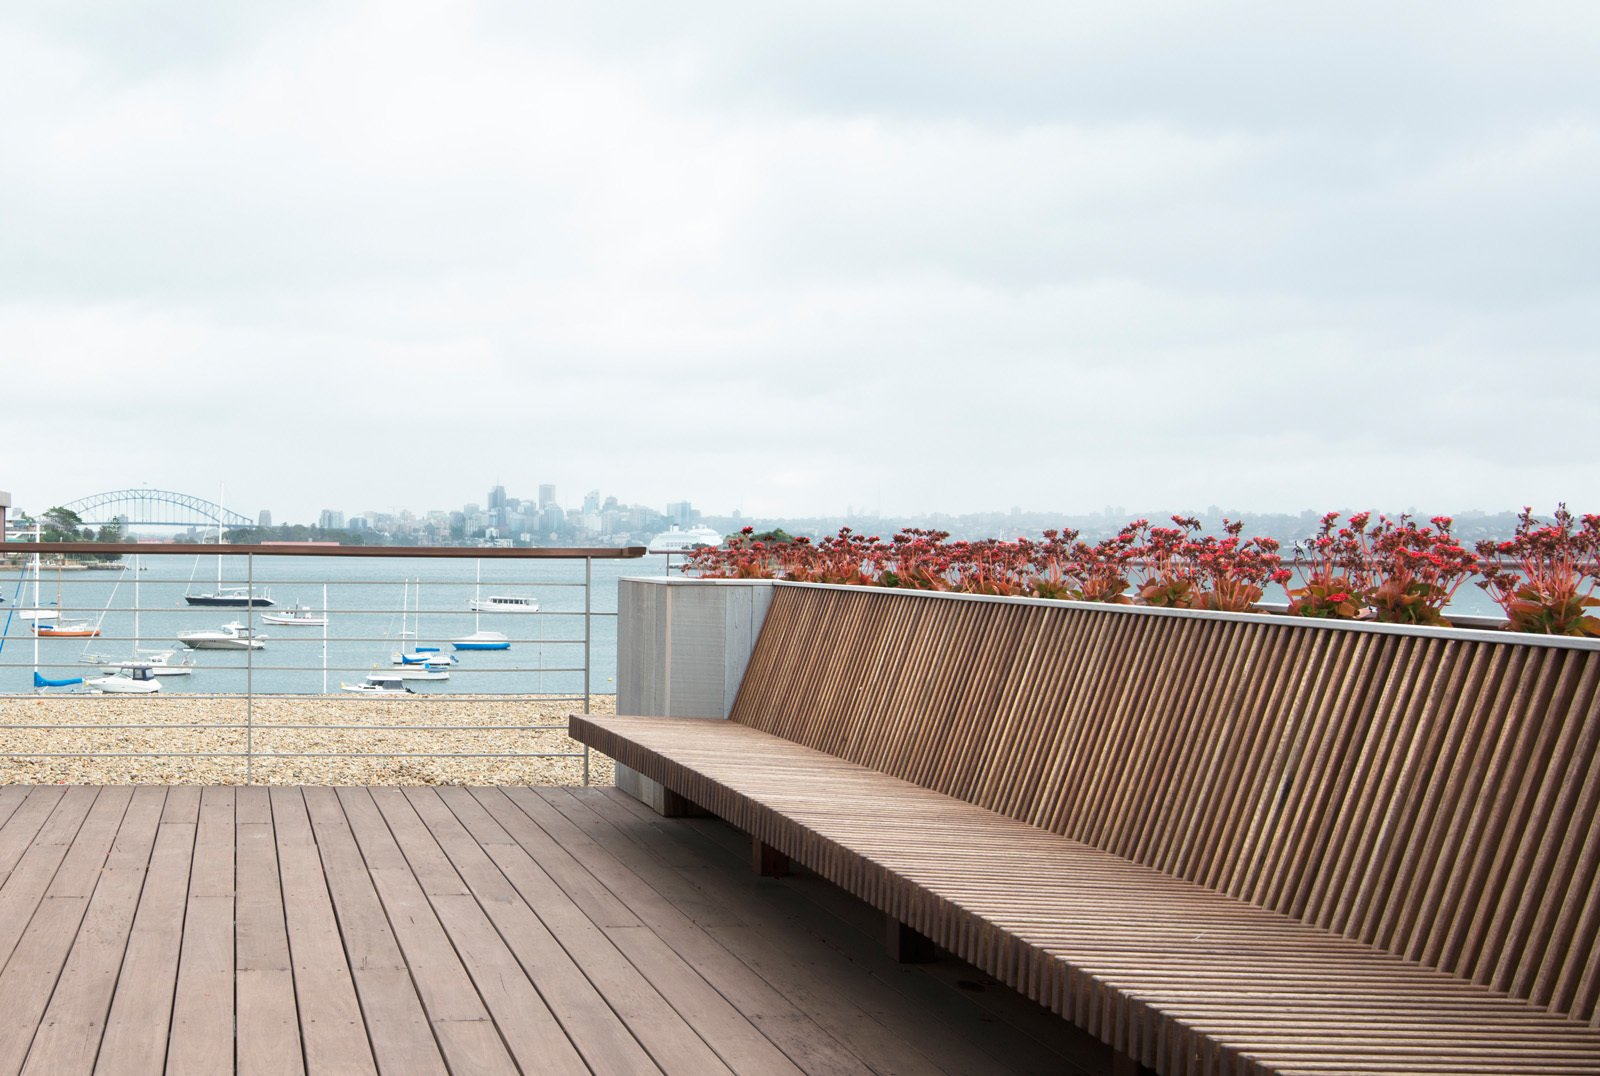 The seat made of hardwood decking board ready for the frequent fireworks over Sydney Harbour. © Edward Birch  Harbour Front-Row Seat by Luigi Rosselli Architects